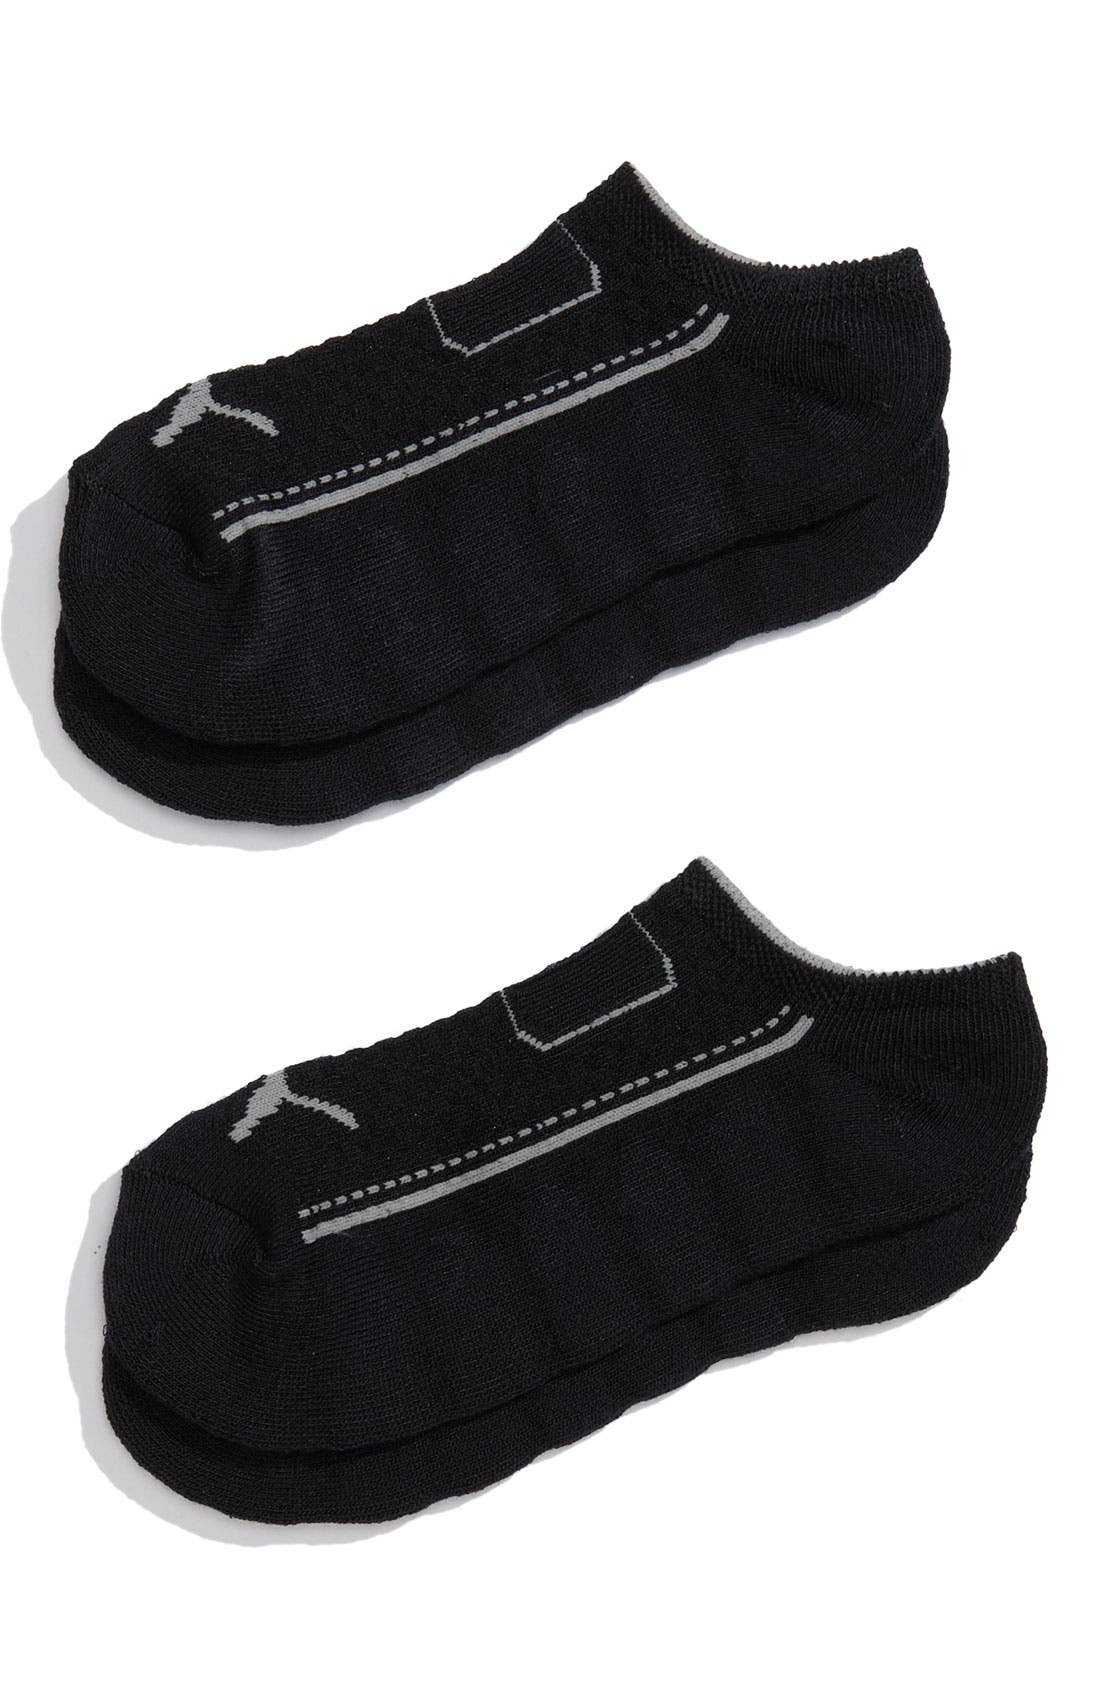 Alternate Image 1 Selected - PUMA No-Show Running Socks (2-Pack) (Women)